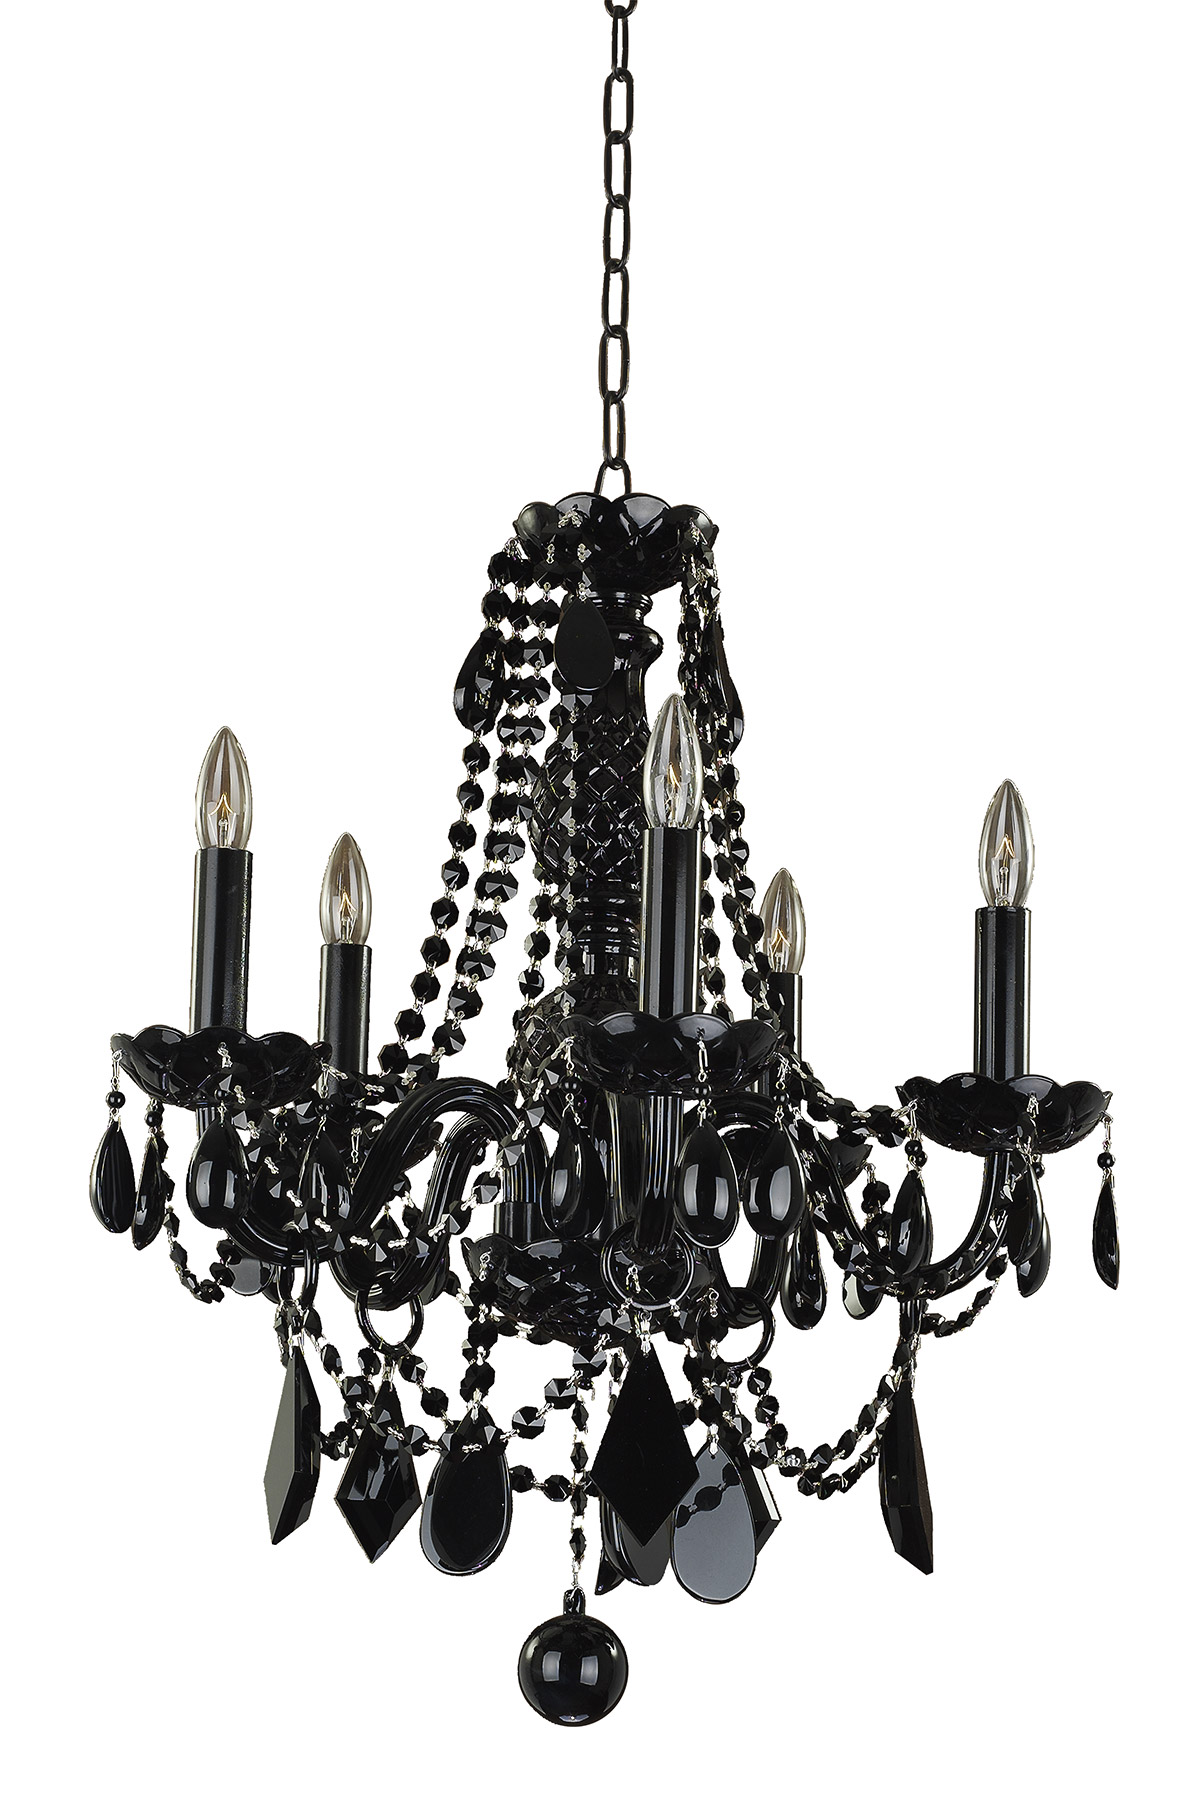 download image black tie 5 light chandelier by glow lighting 583jd5ljb 7j black chandelier lighting photo 5